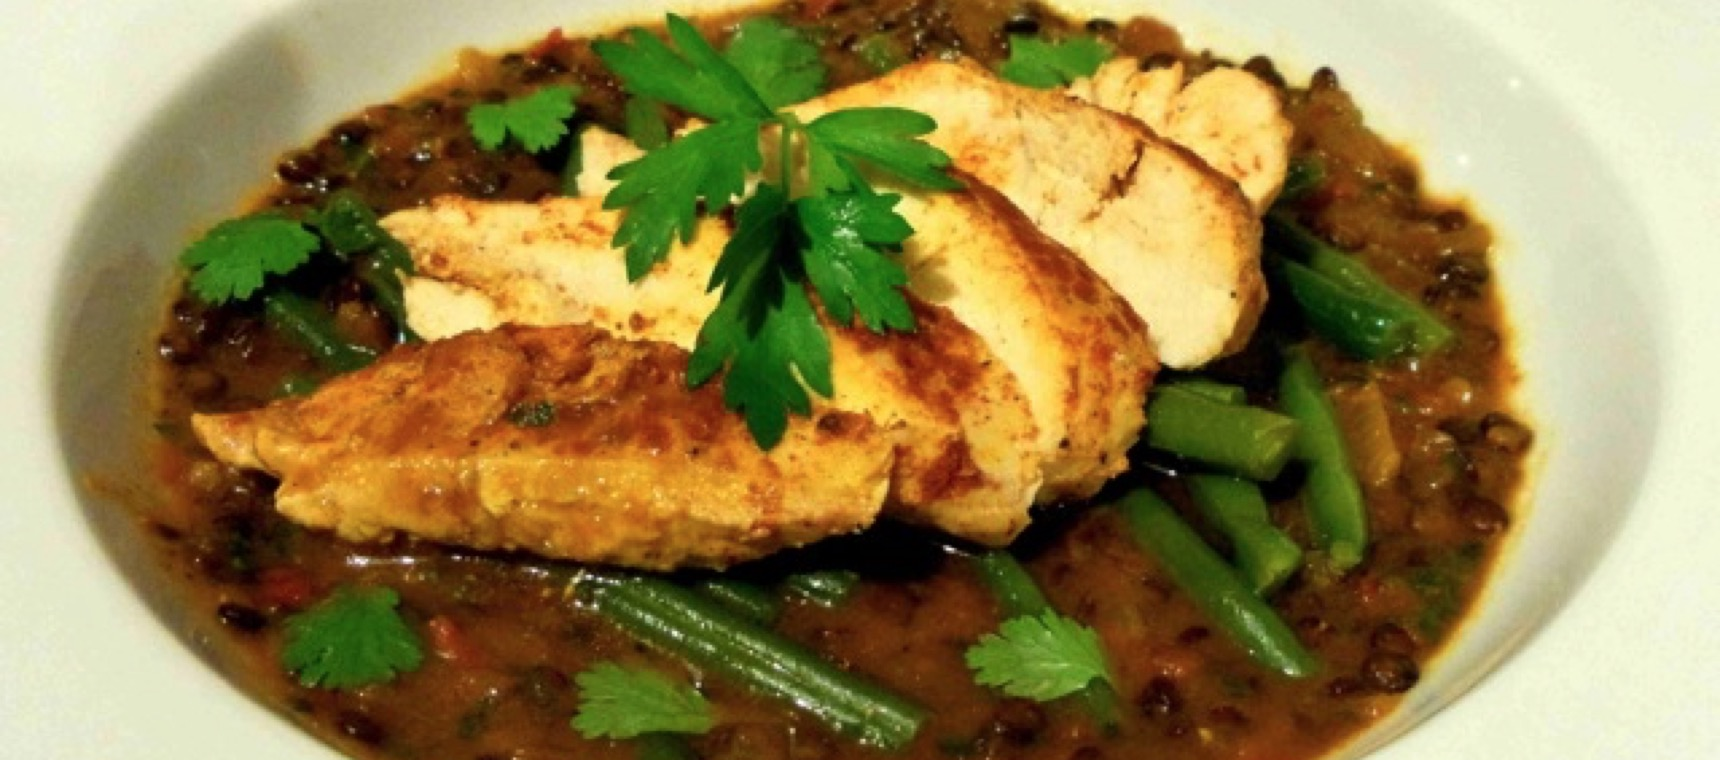 Harissa Chicken, Spiced Lentil & Tomato Stew with Steamed Green Beans